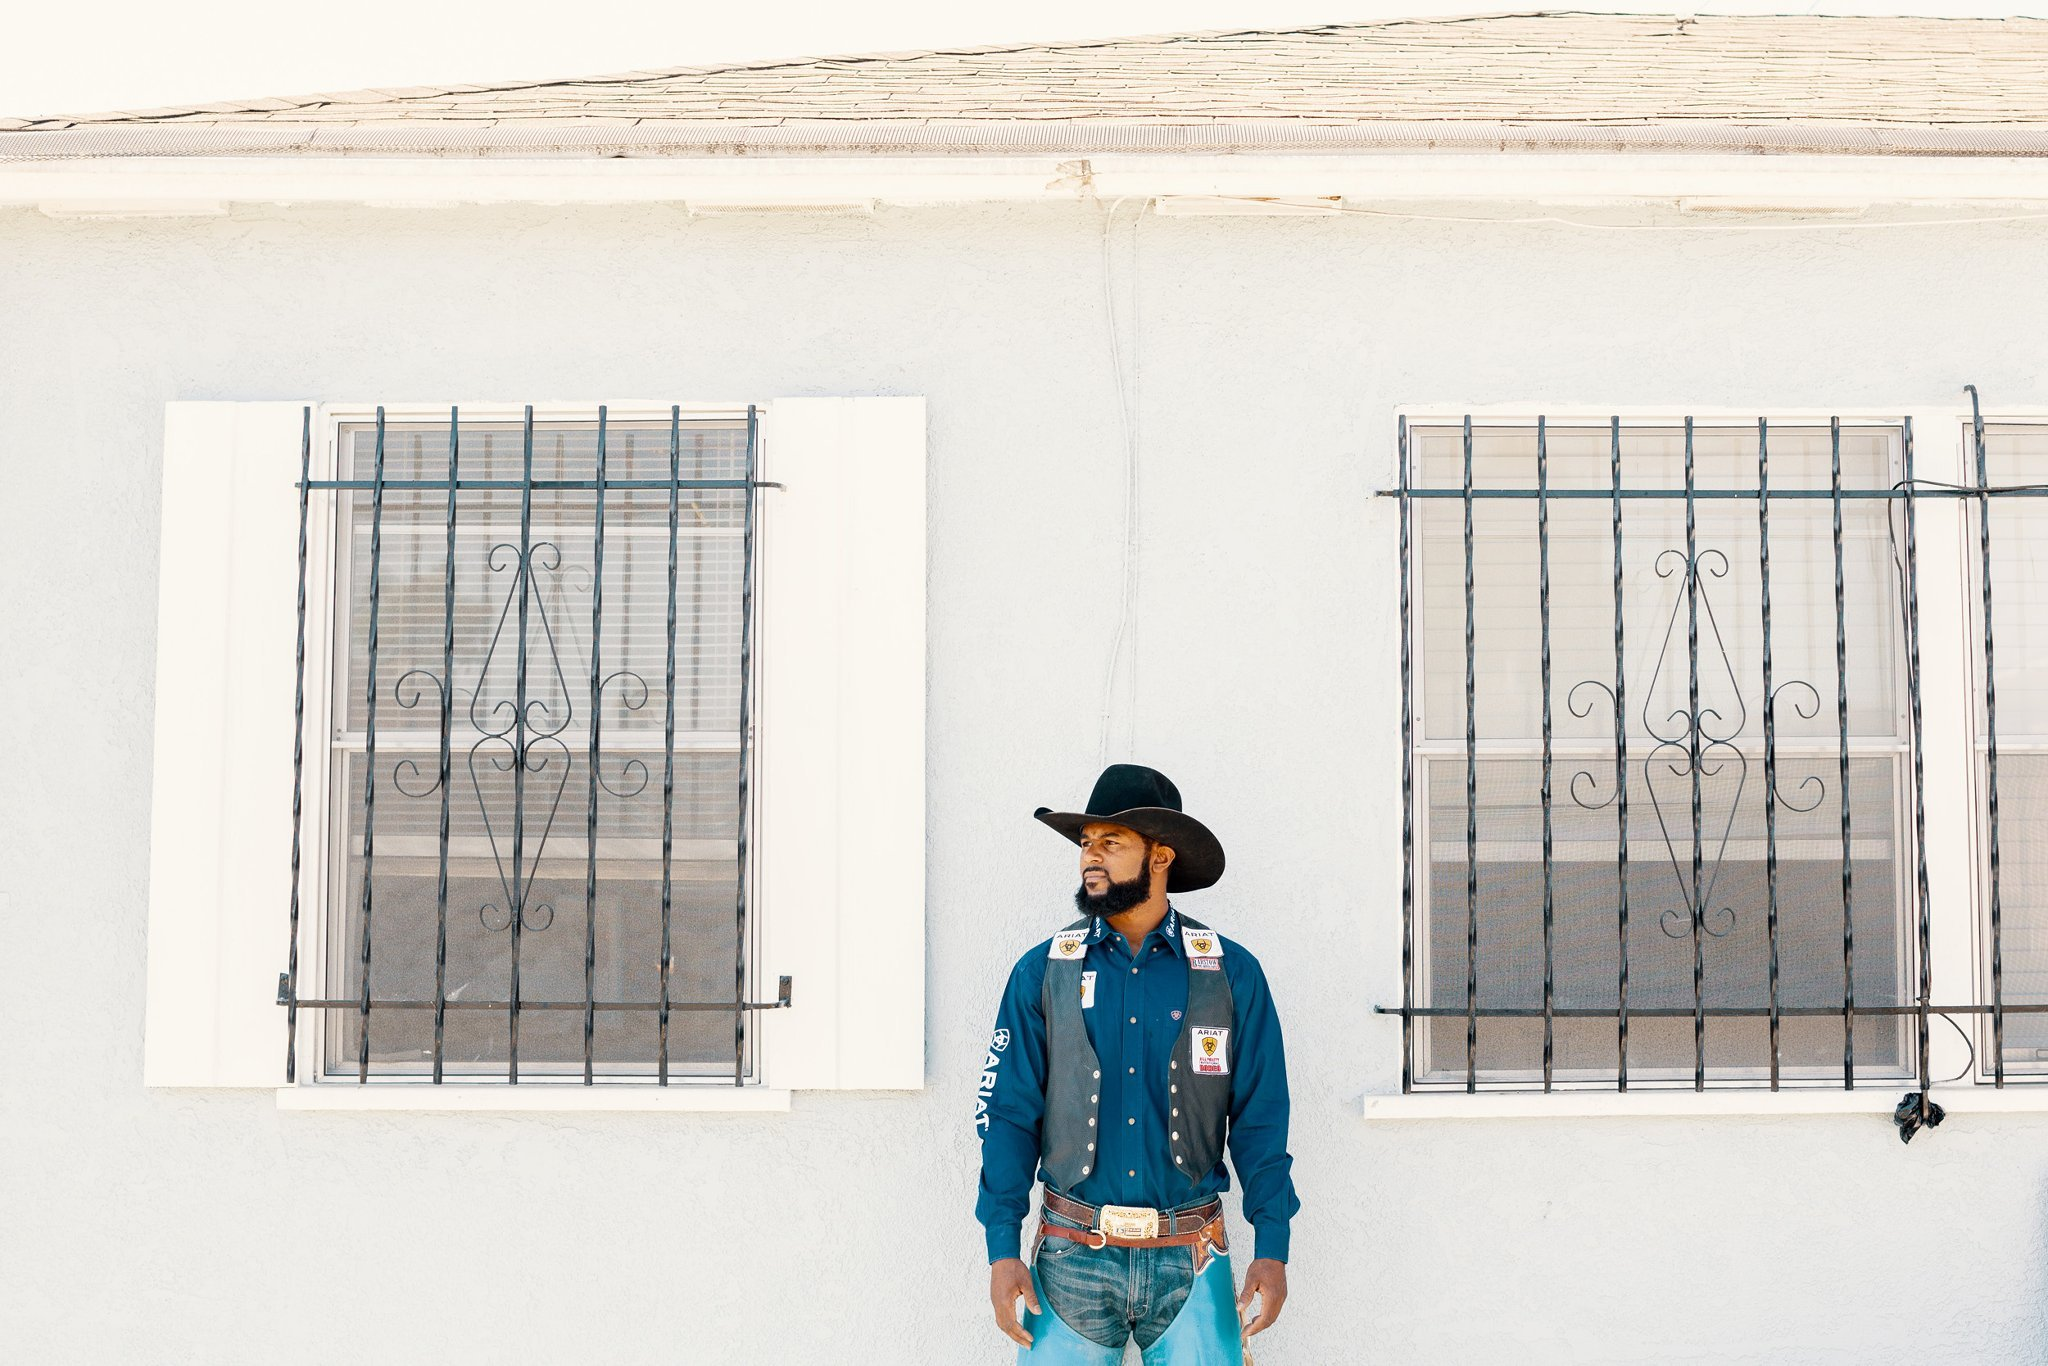 Meet the Compton Cowboy riding to honor Black cowboys and Juneteenth